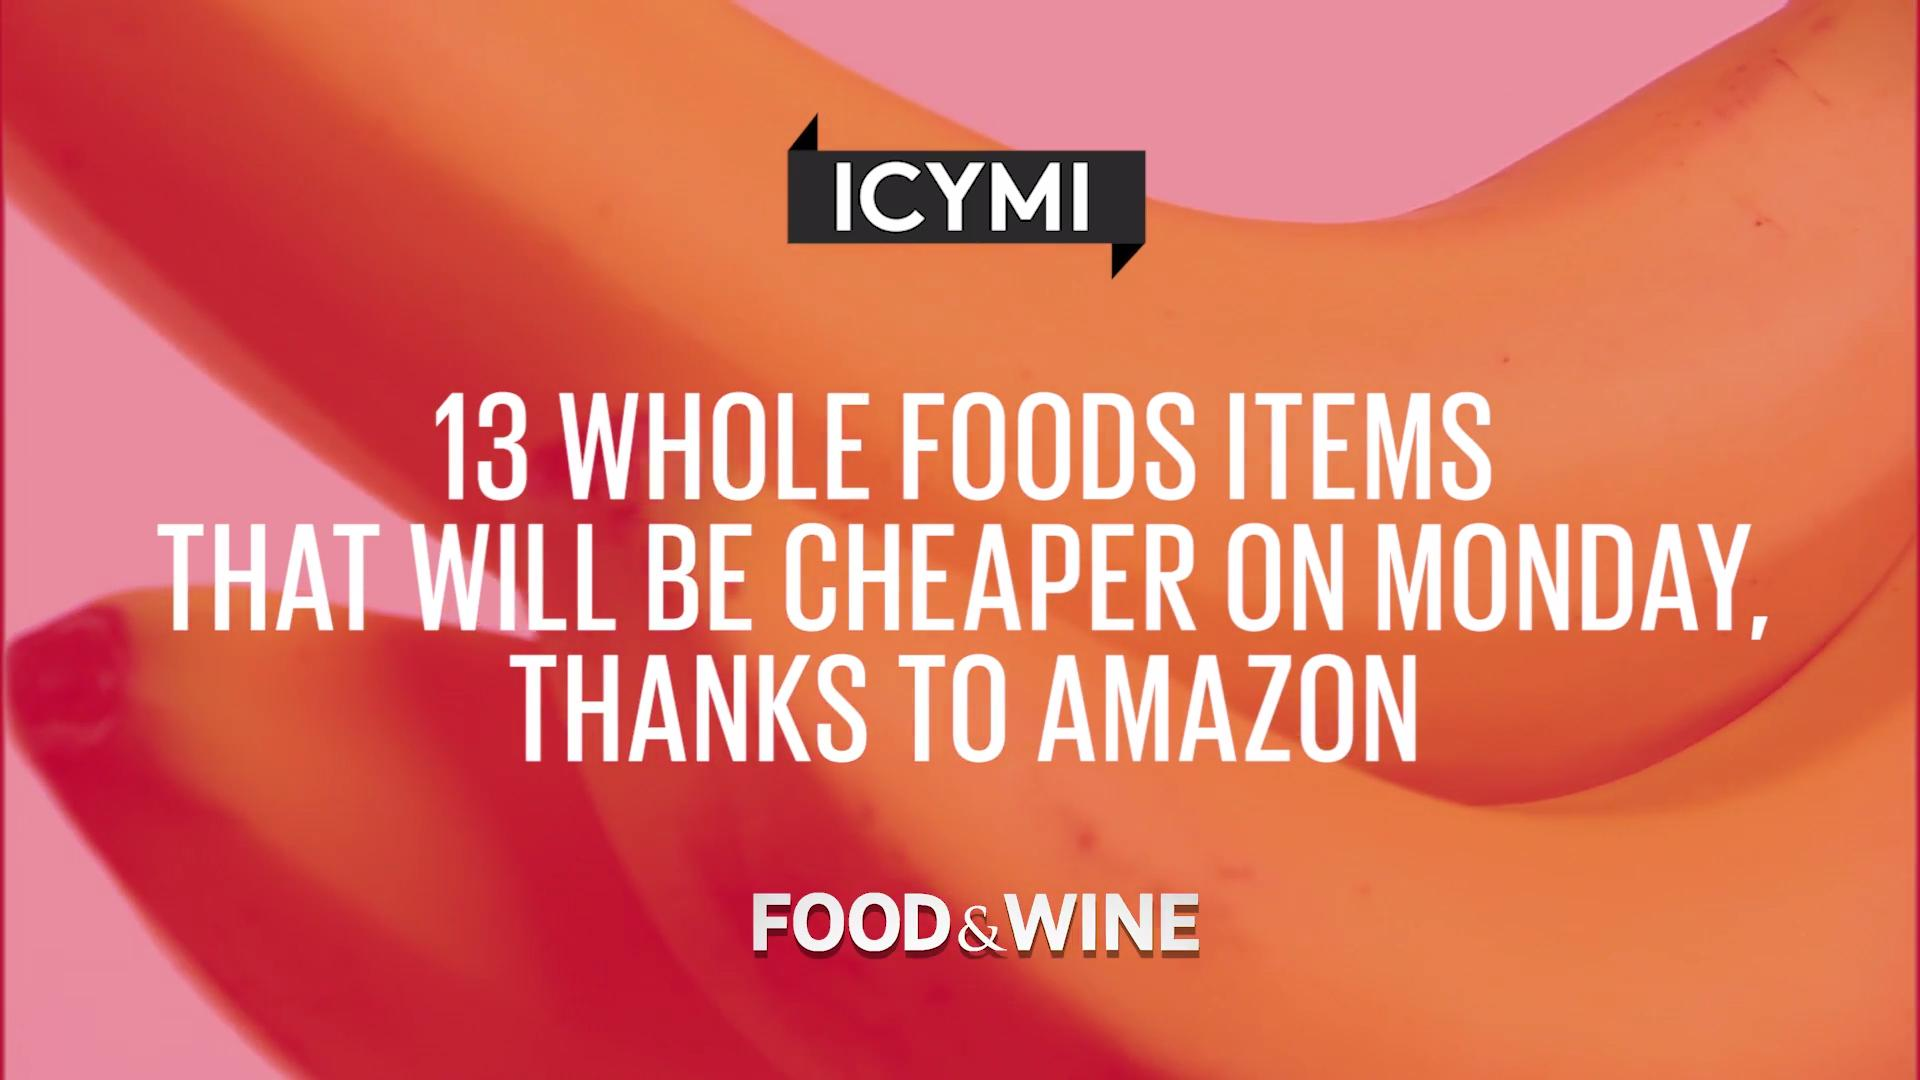 You Can Buy Whole Foods Products on Amazon Now. Here Are the Best Deals We Found